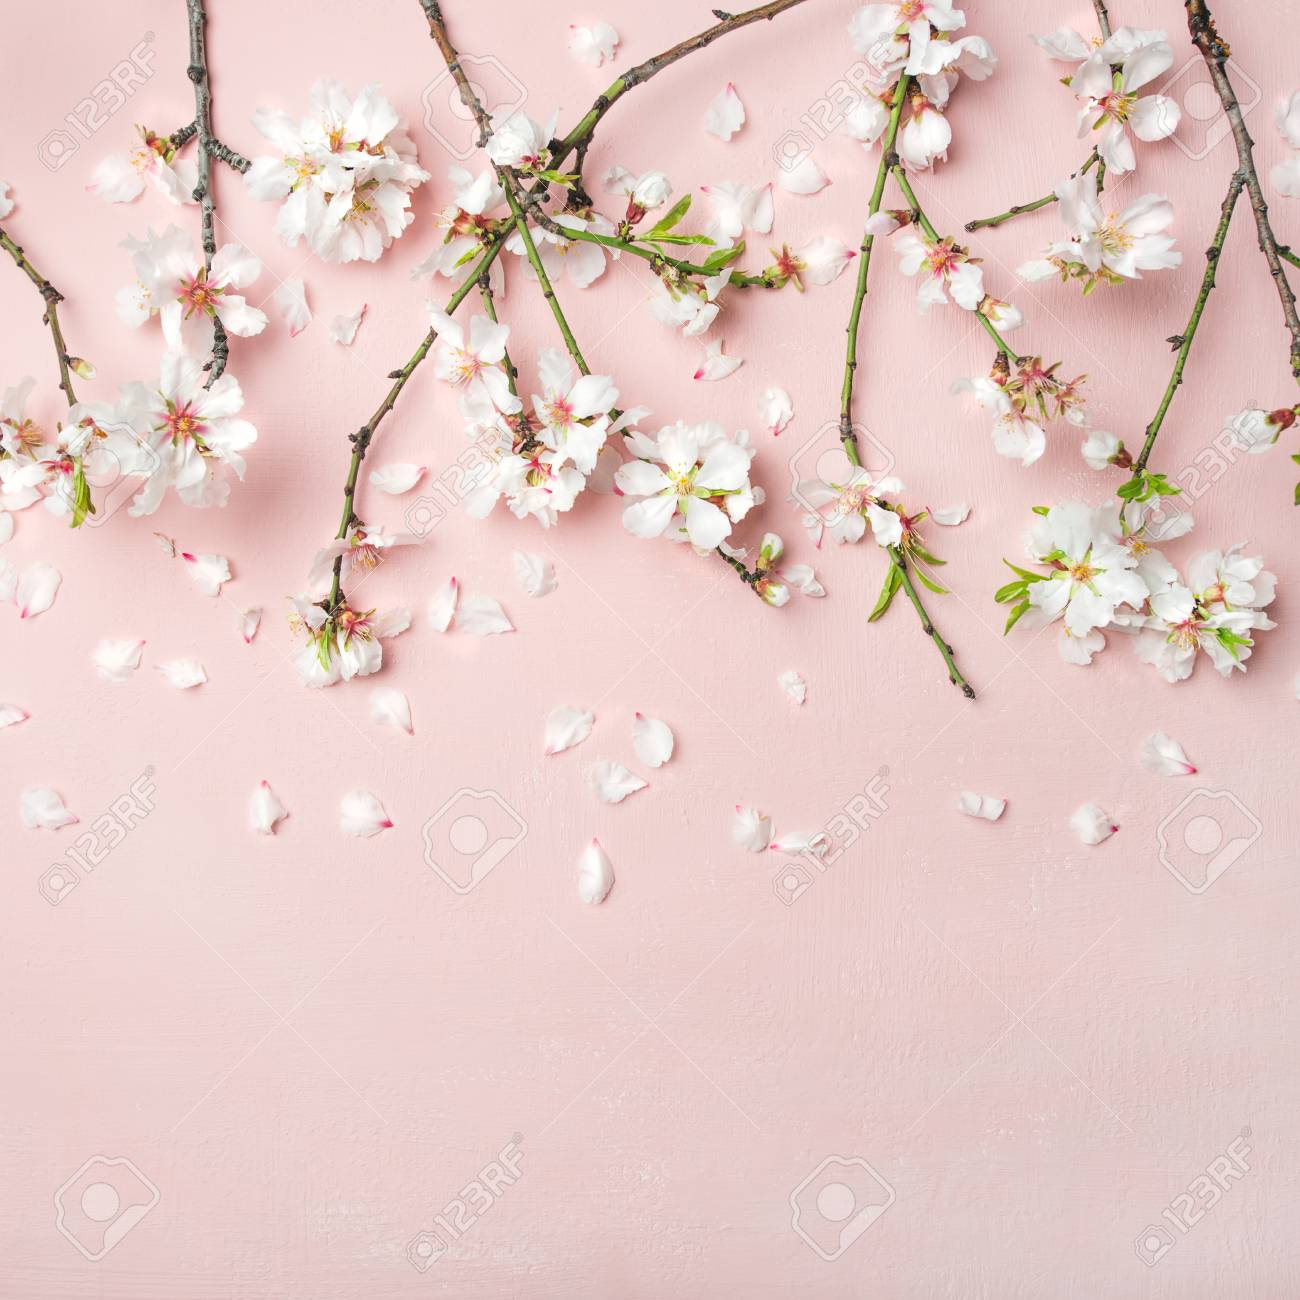 Spring floral background texture wallpaper flat lay of white spring floral background texture wallpaper flat lay of white almond blossom flowers mightylinksfo